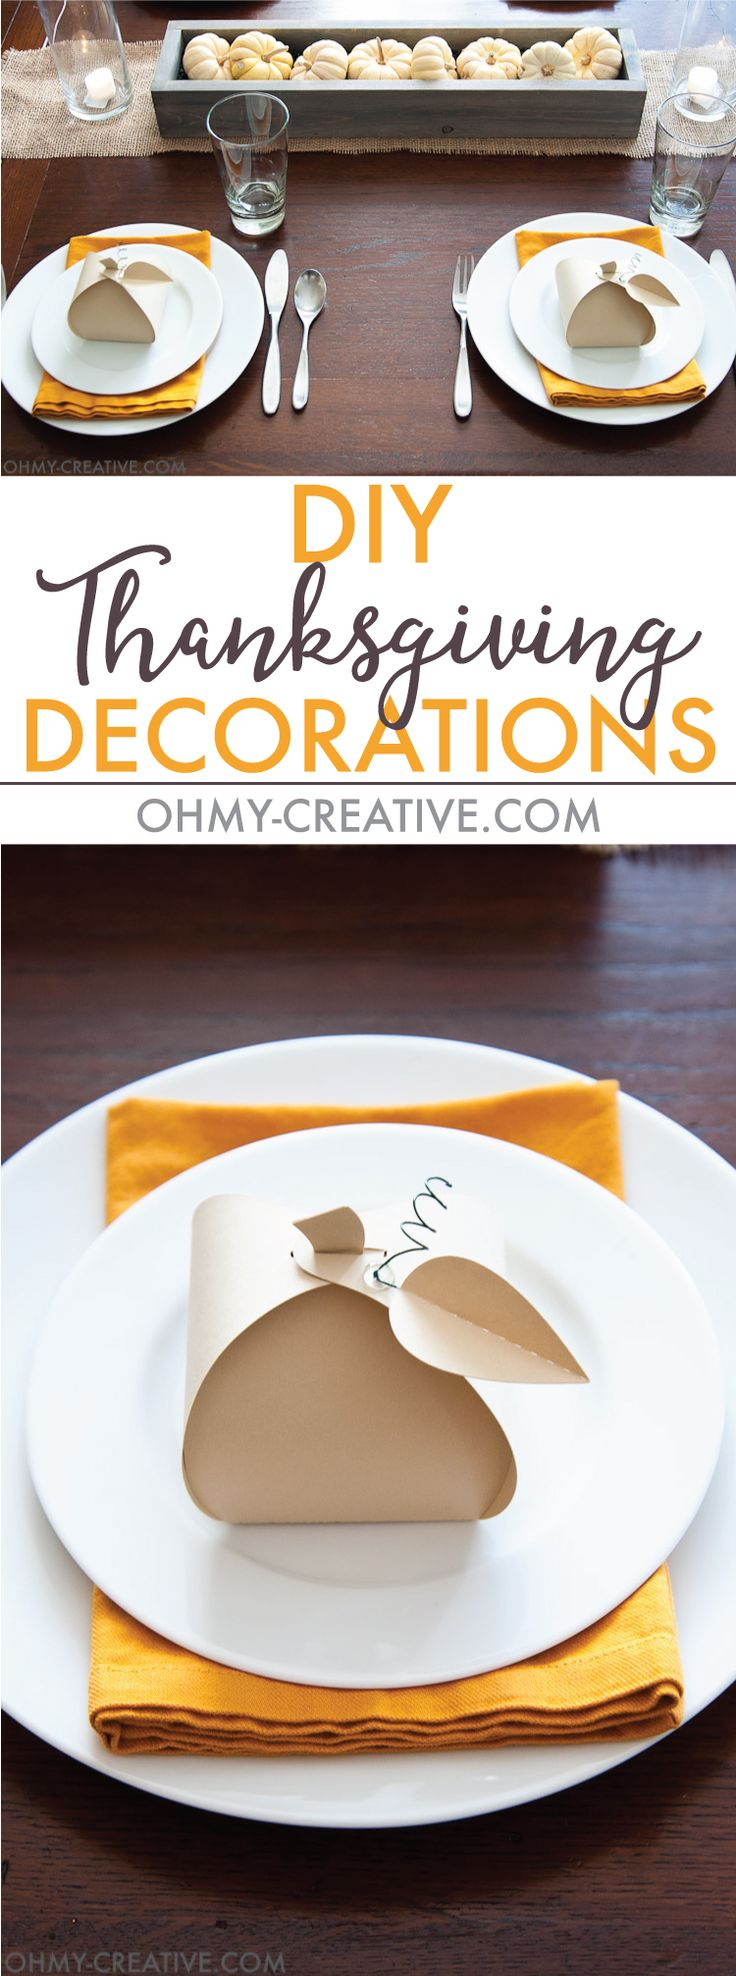 Top 100 mantel decorating ideas for thanksgiving image - Make These Easy Paper Pumpkins For Your Thanksgiving Table Or Any Diy Thanksgiving Decorations You